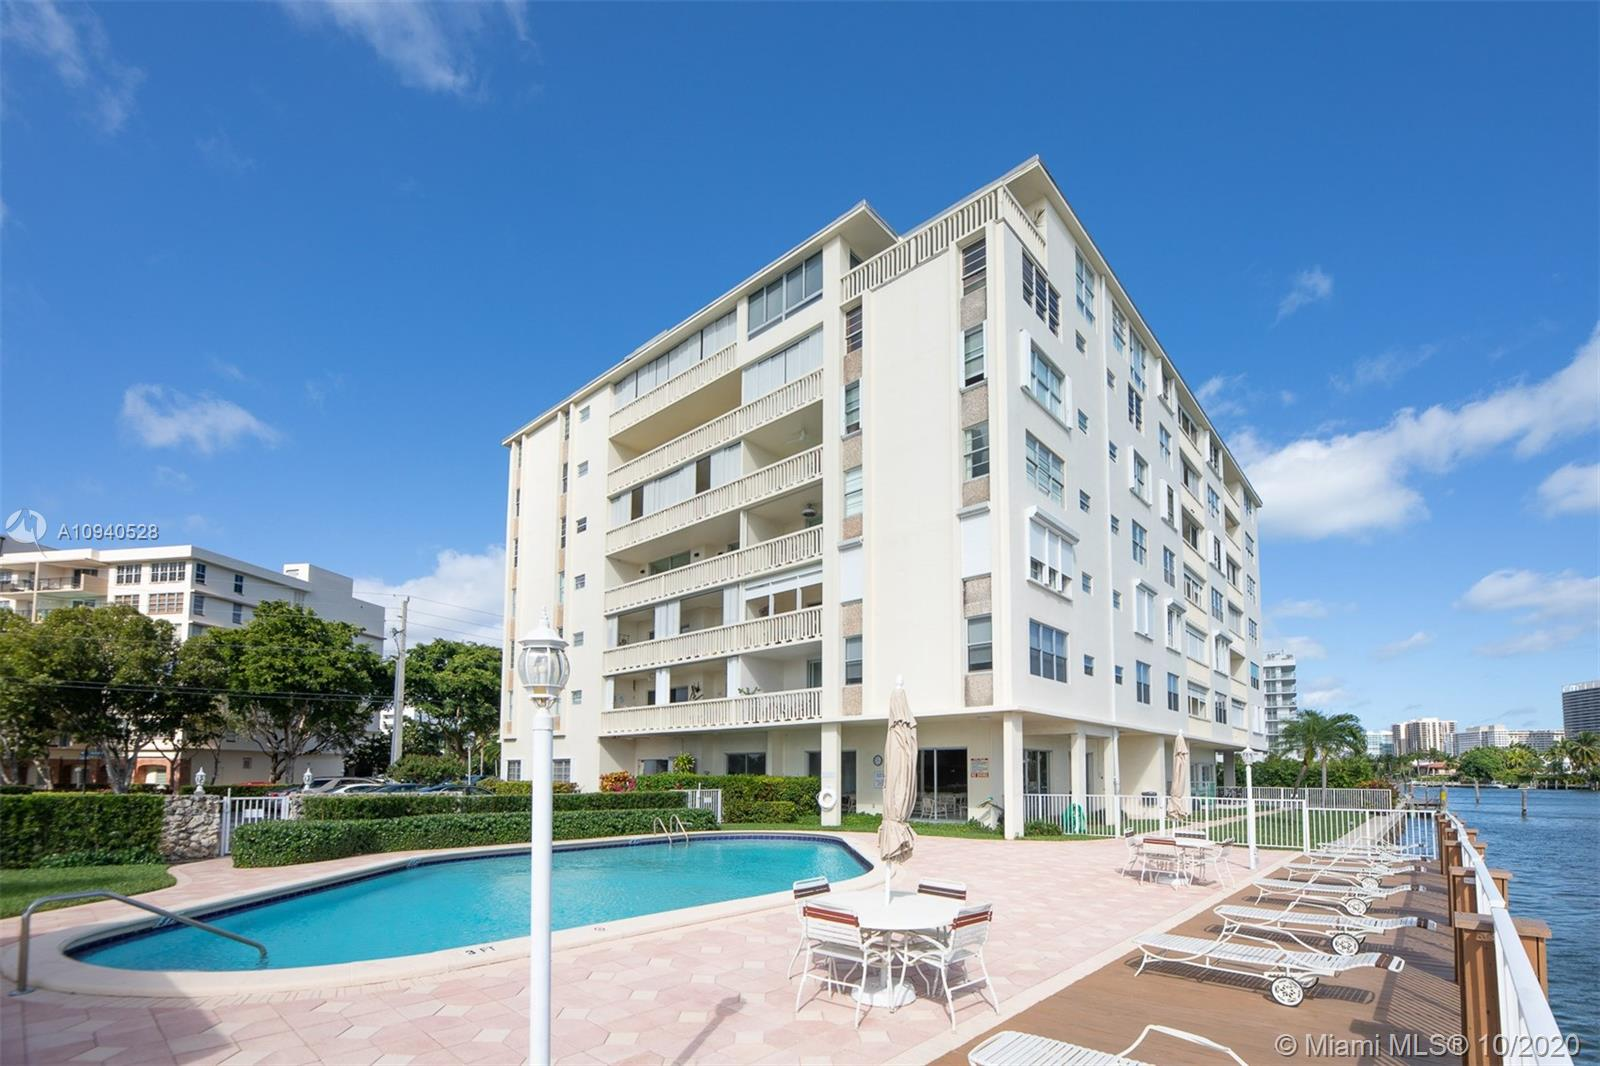 Photo of 9111 E Bay Harbor Dr 5A # listing for Sale